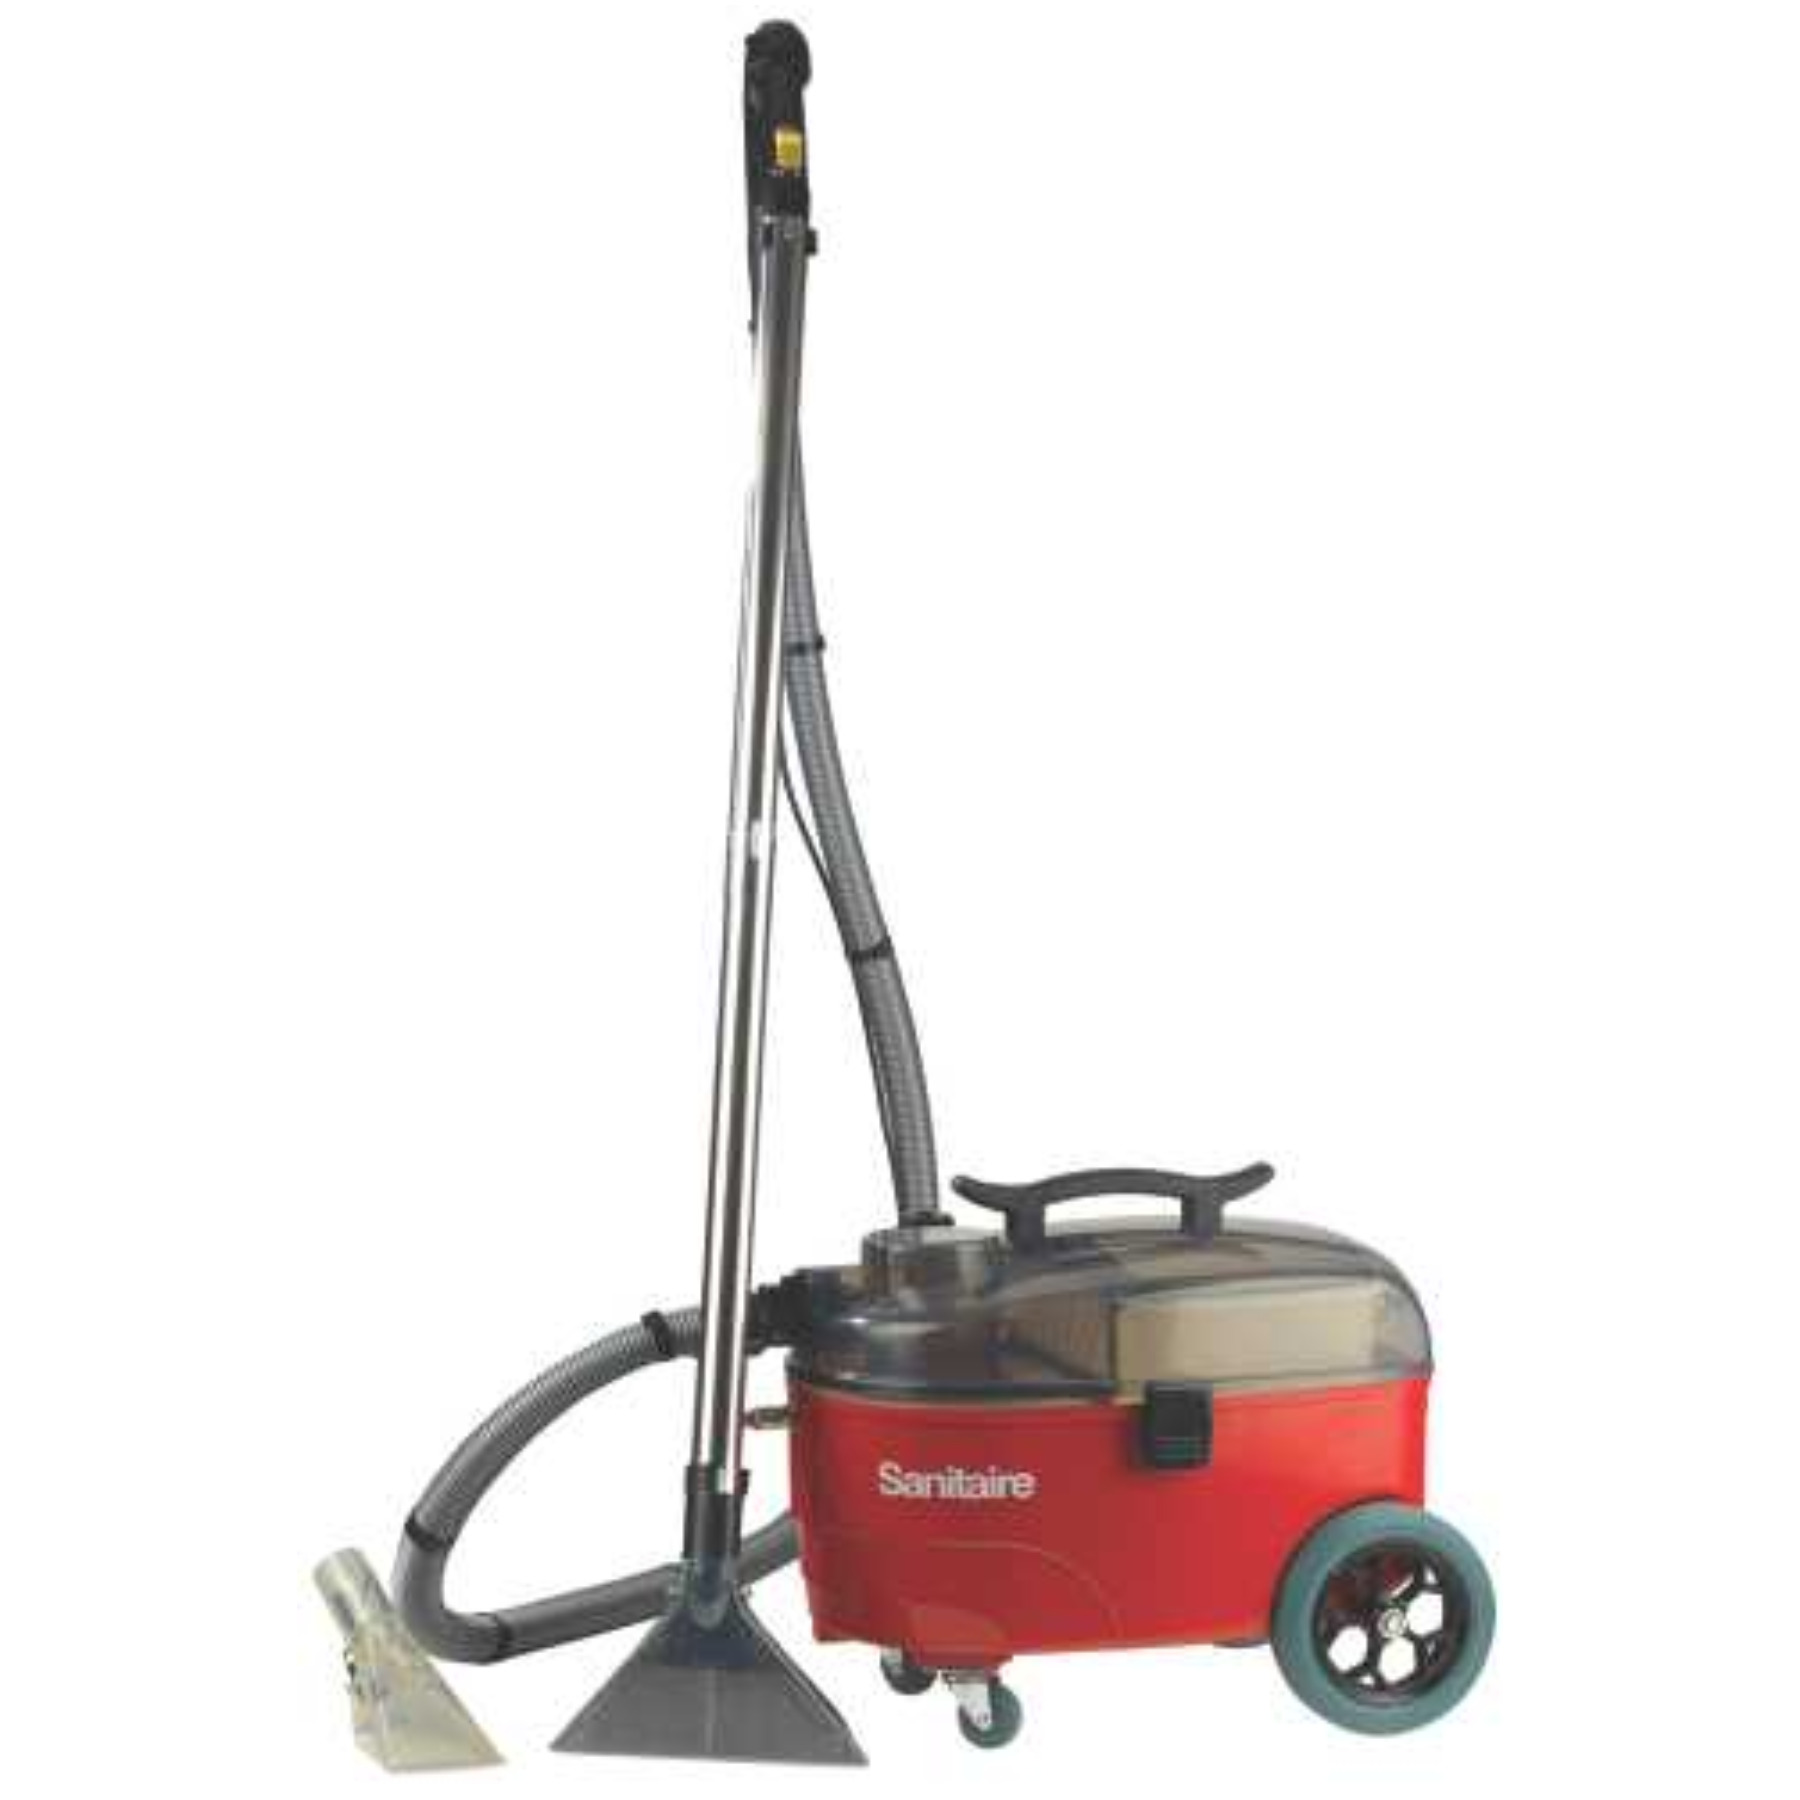 SANITAIRE� CARPET EXTRACTOR, 9 AMPS. COMMERCIAL MOTOR, 1.5 GALLON TANK